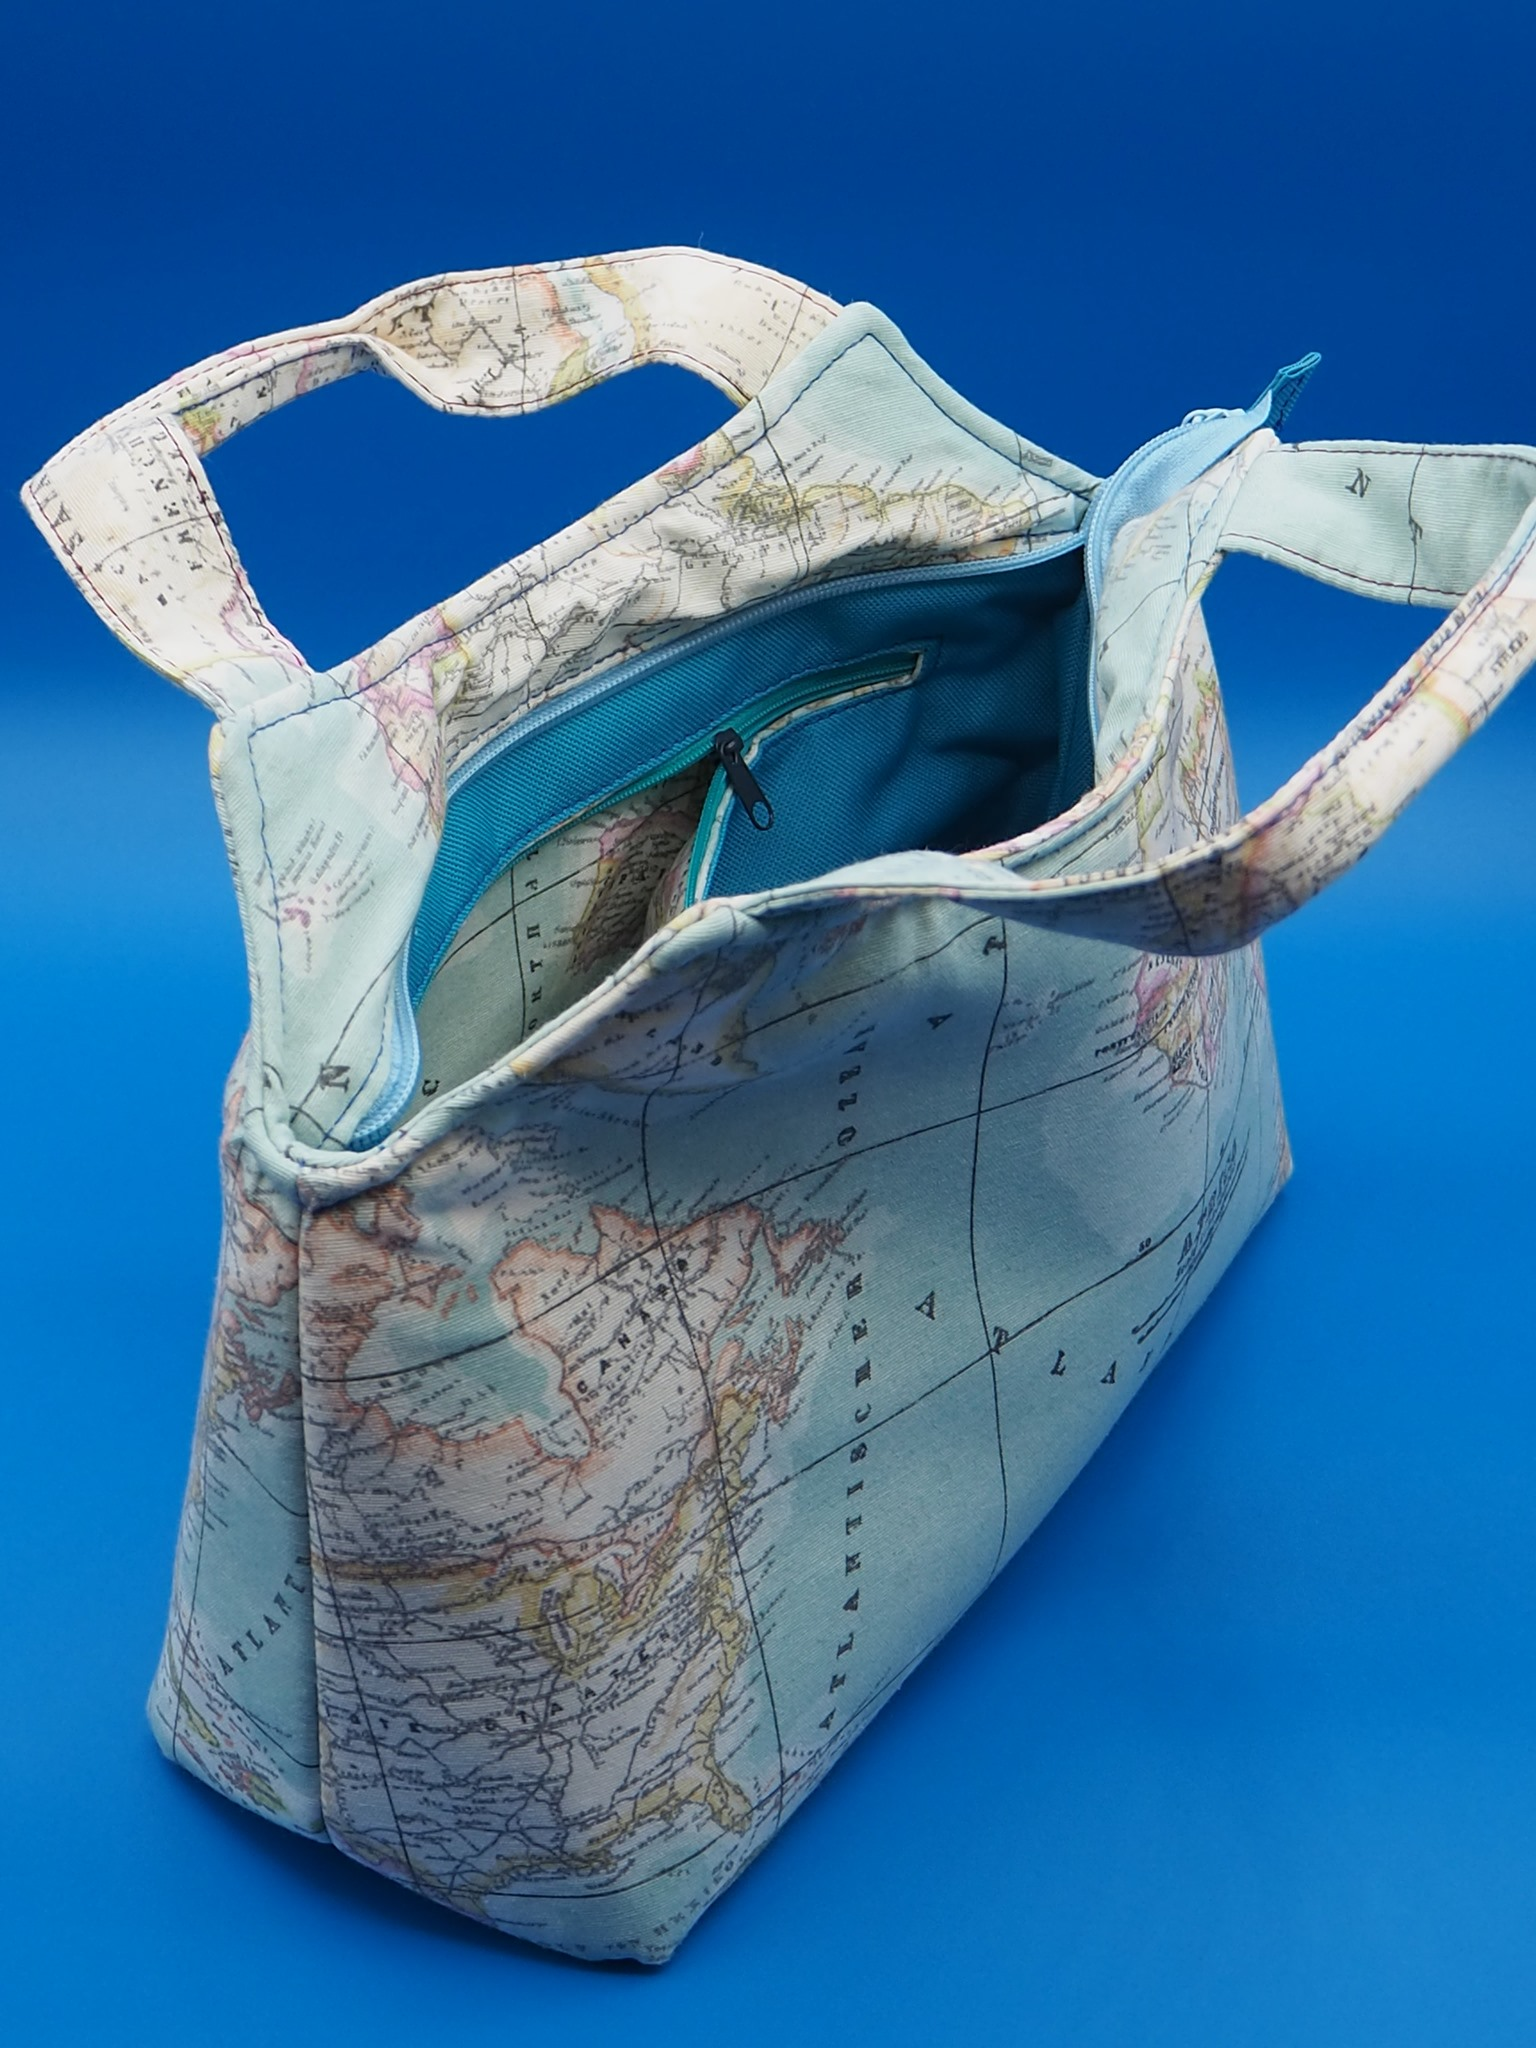 The Hope Handbag from Sewing Patterns by Mrs H, made by Laura Aarsen of Double Dutch Stitching